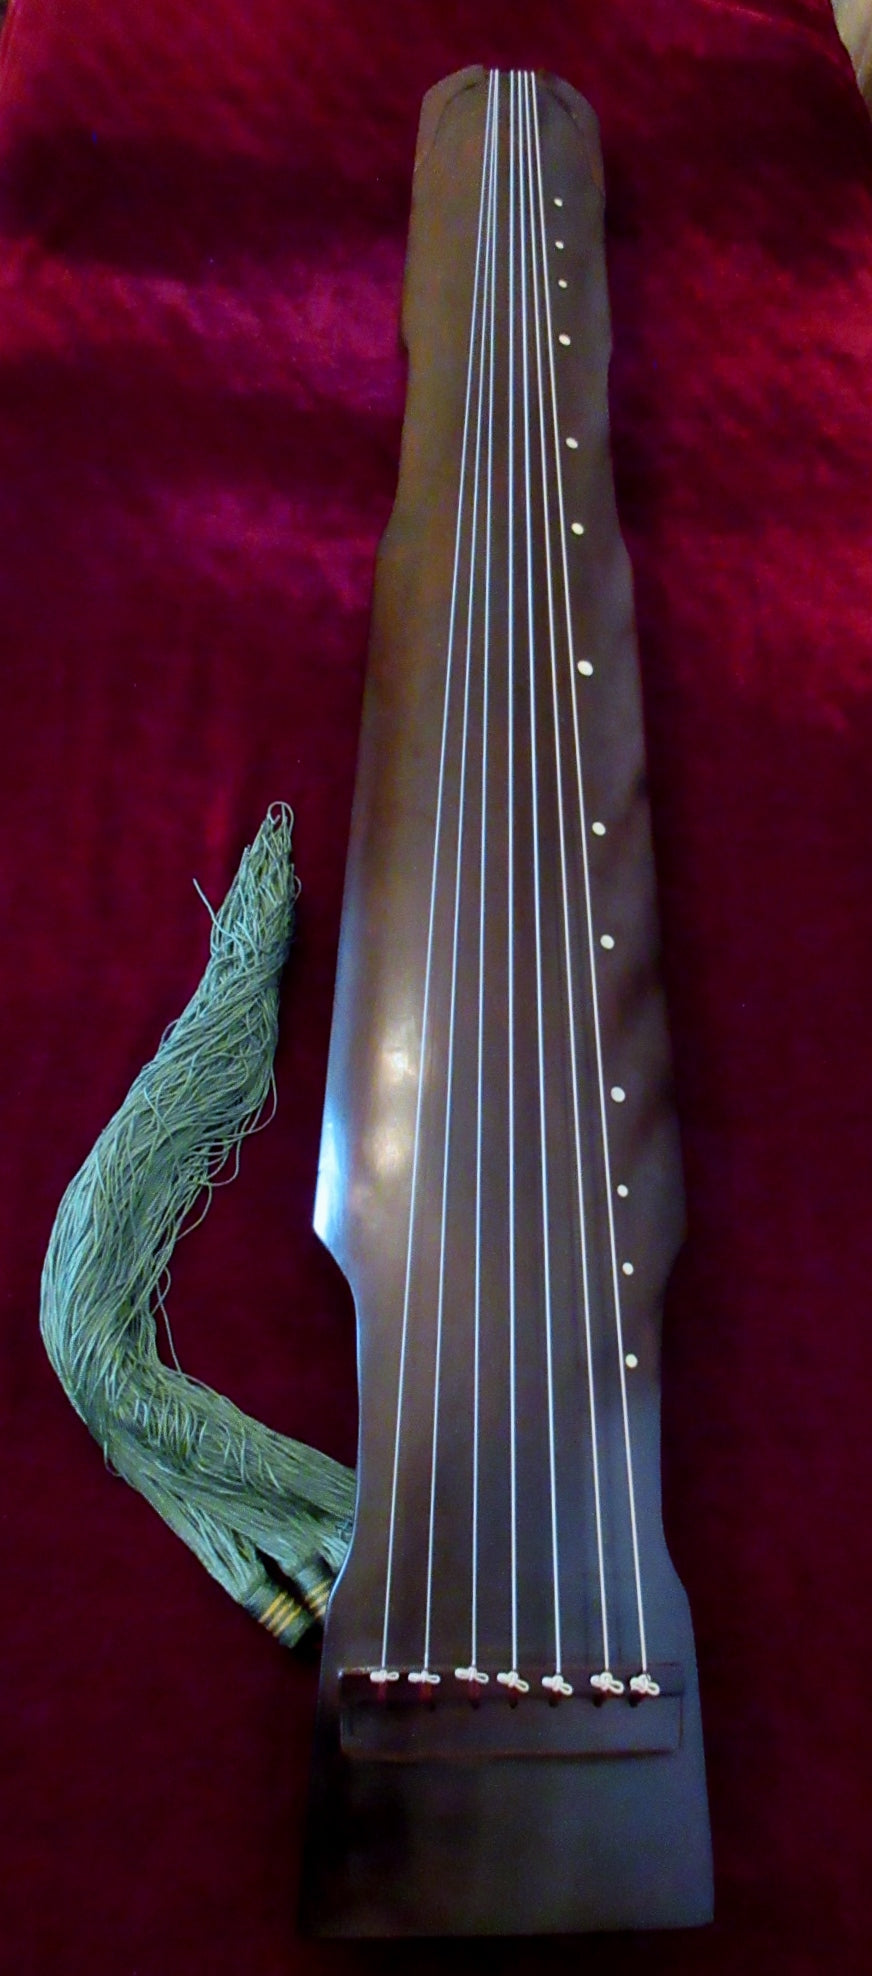 Guqin, Zhong-ni Style, with Guqin Bag, Electric Tuner, Cushioning Pads. Set up and tuned. Ready to play! 古琴,仲尼式,送琴囊与电子调音器